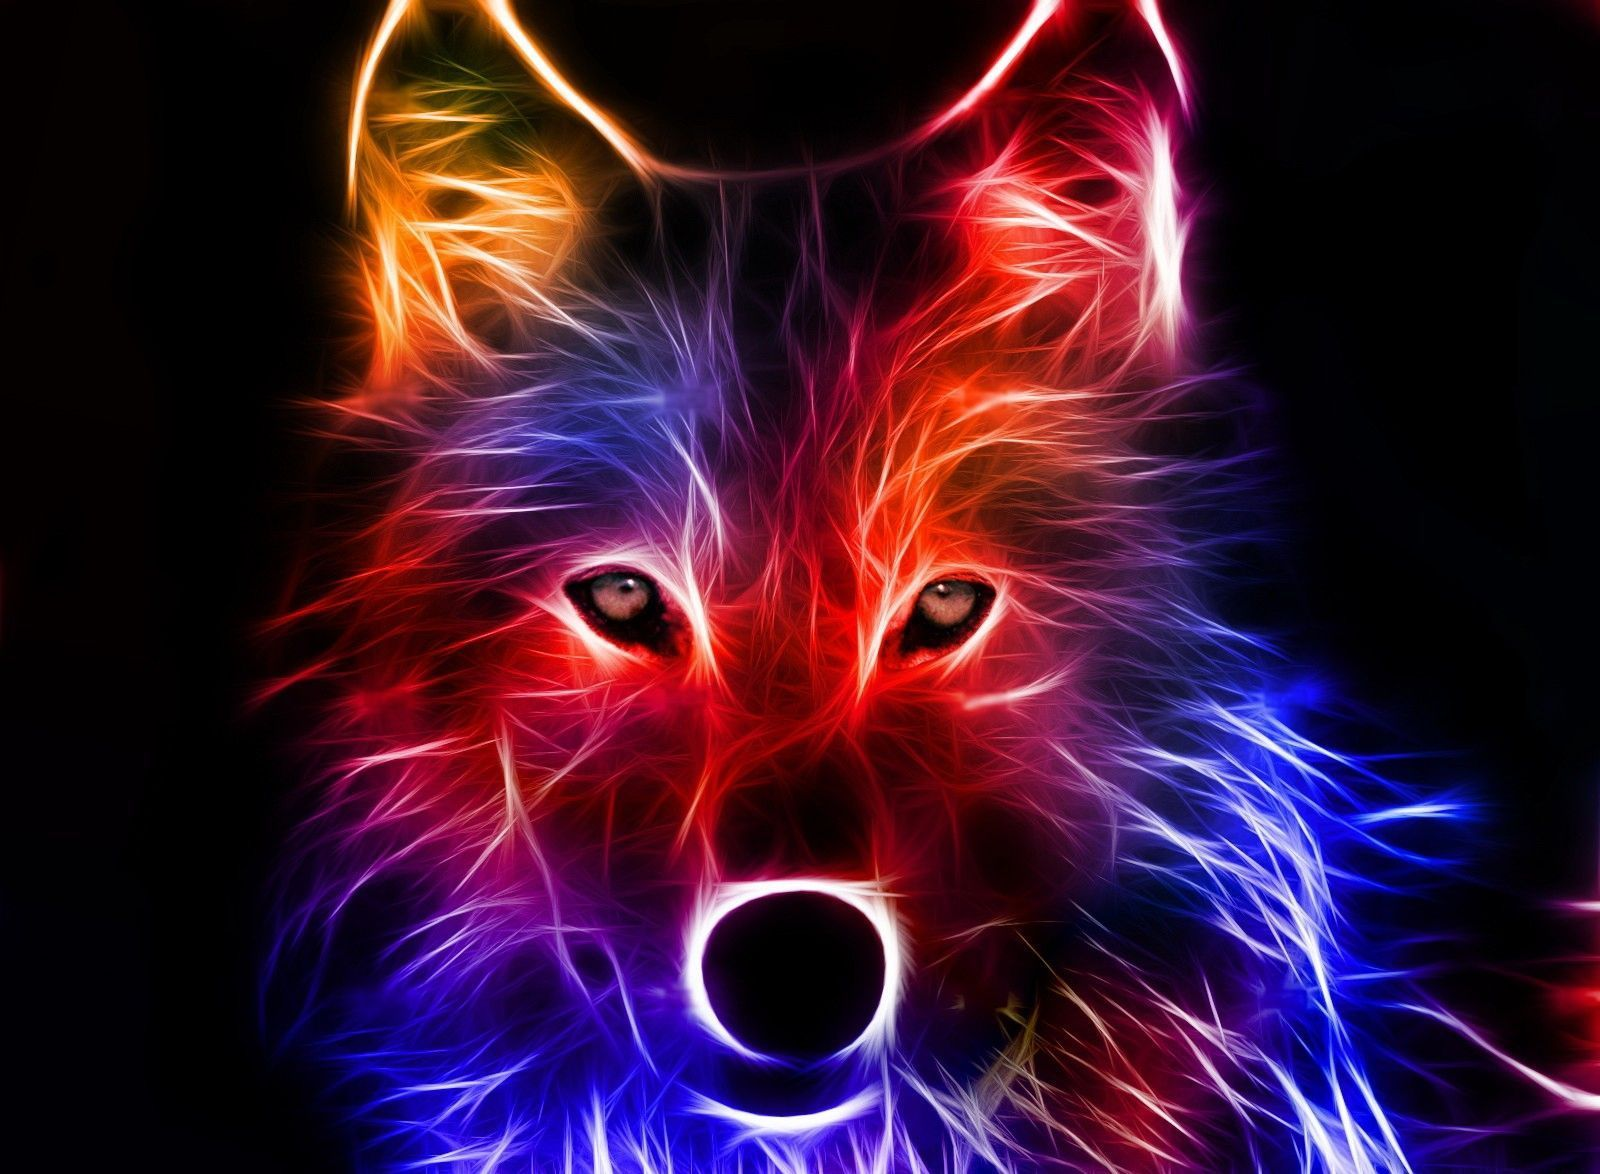 1600x1174 40+ Neon Red Wolf Wallpapers - Download at WallpaperBro